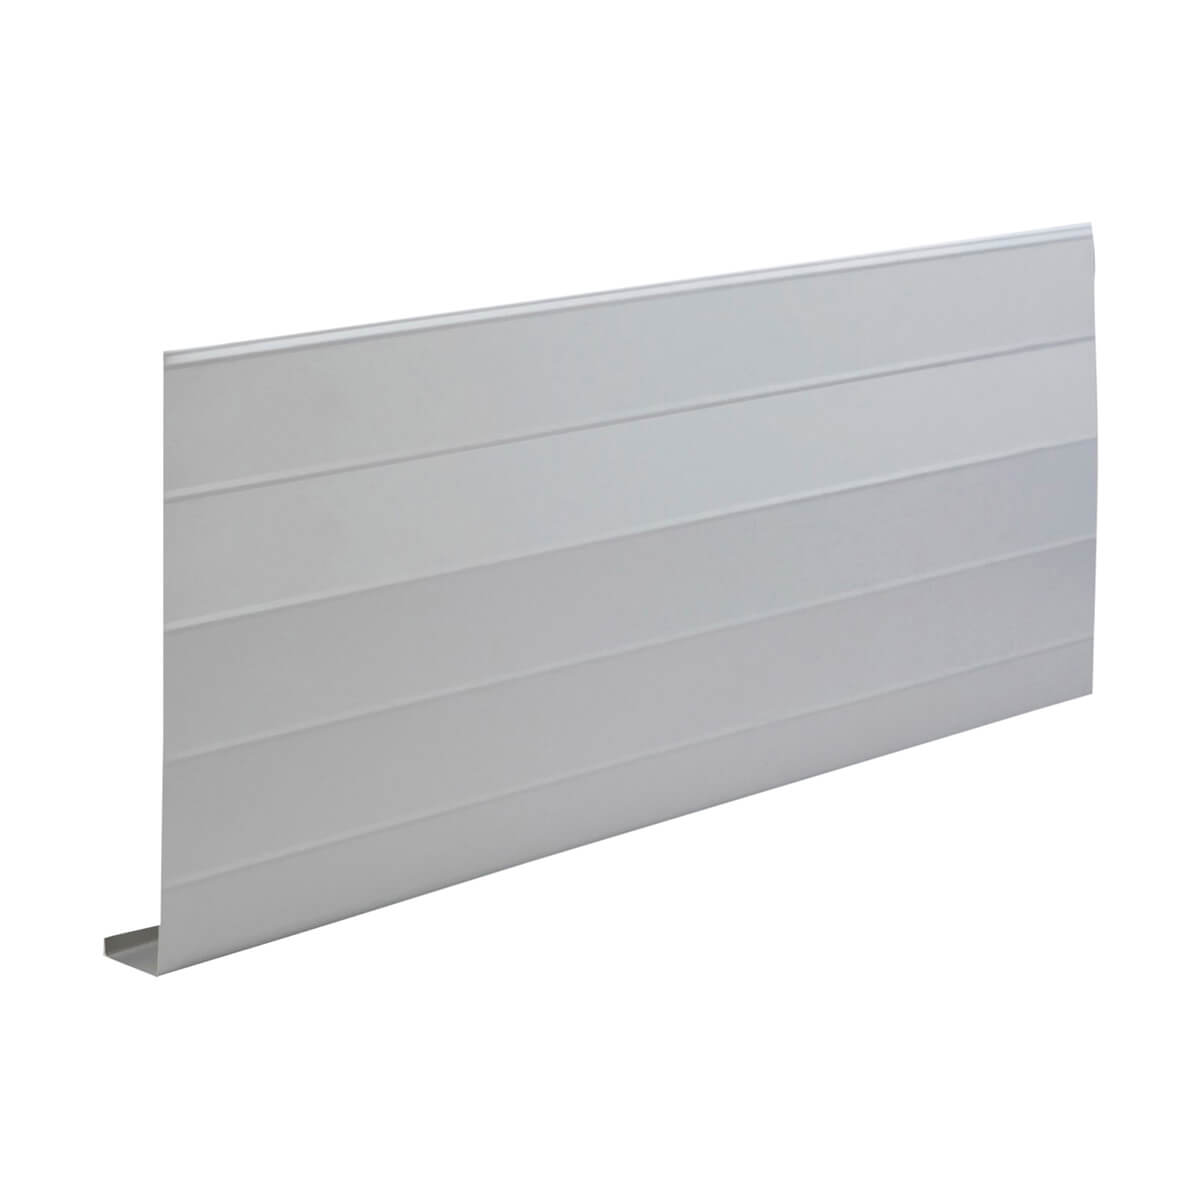 Kaycan Insulated Steel Starter Strip - 10-ft - Natural Finish